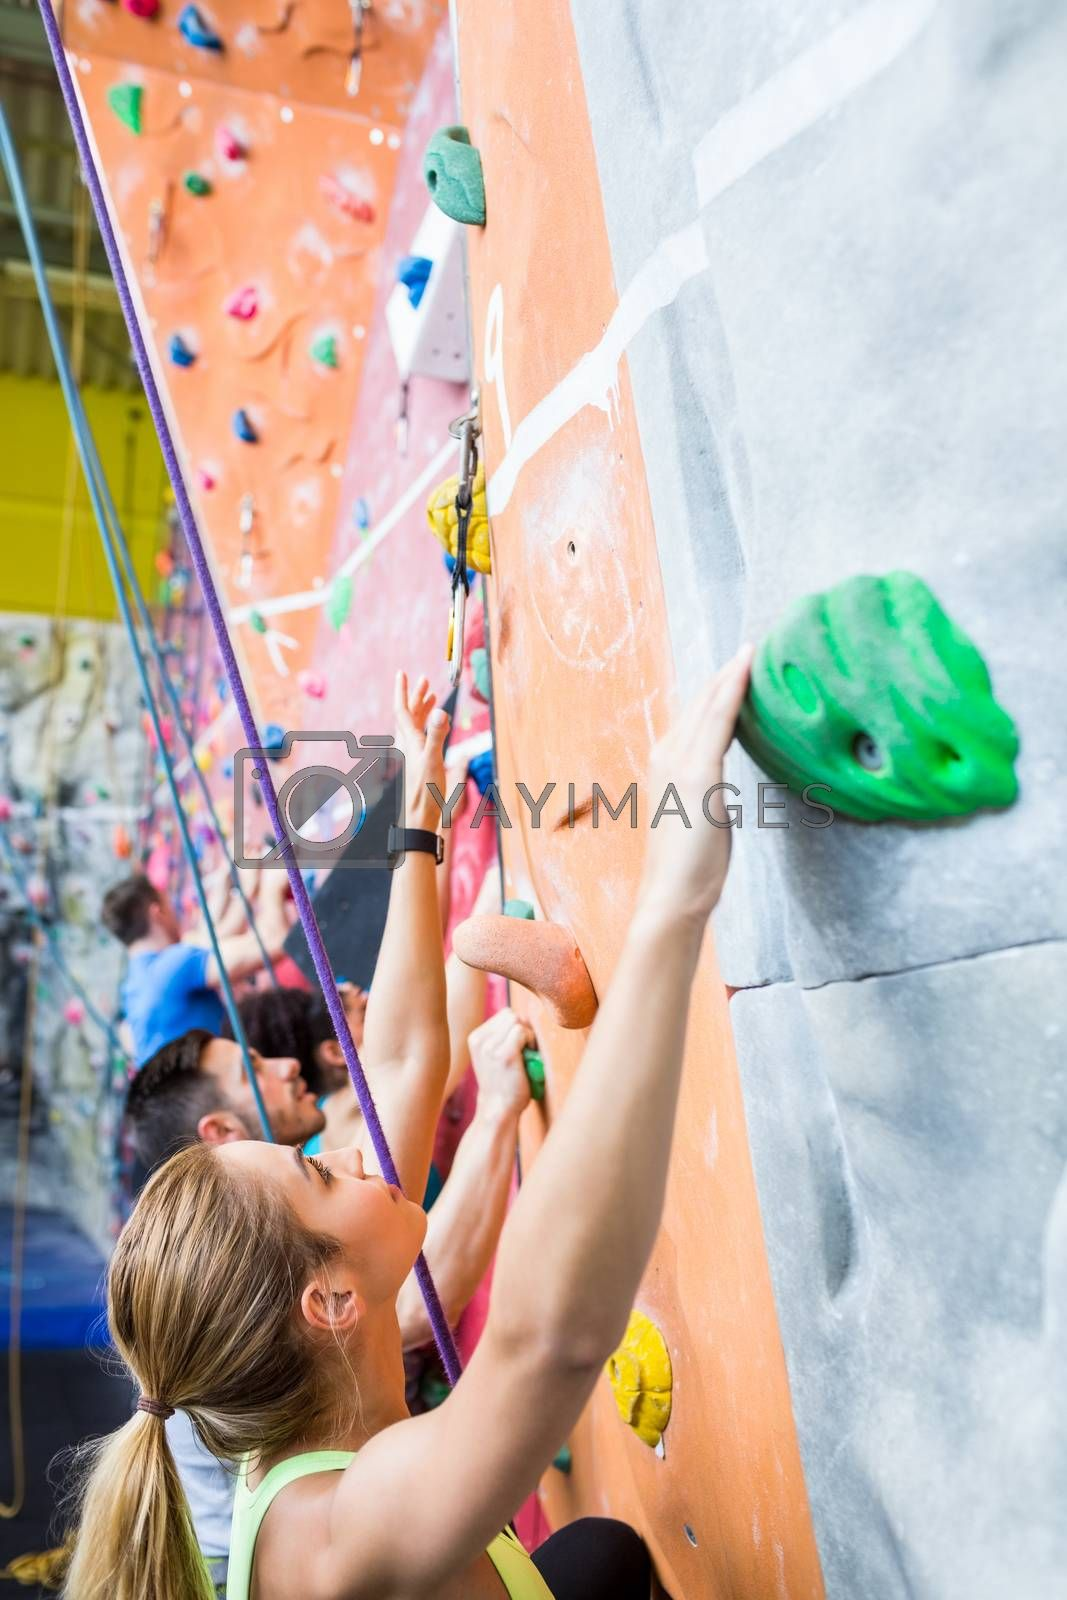 Fit people rock climbing indoors at the gym